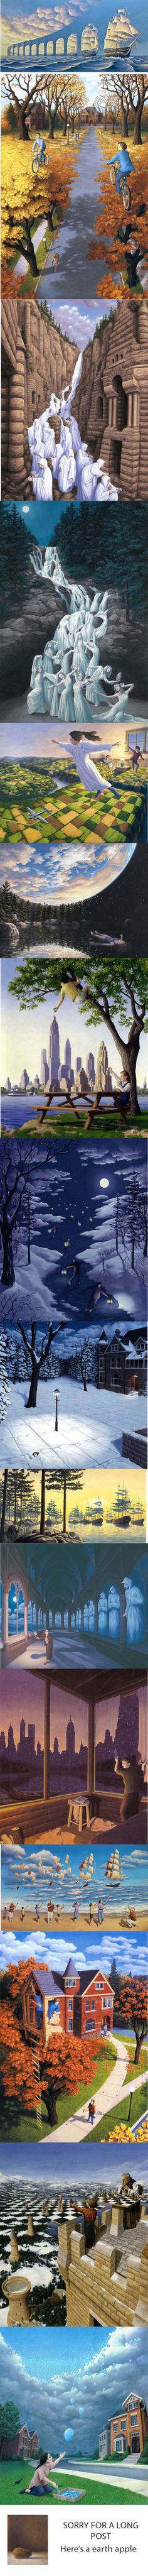 Some of Canadian artist's Rob Gonsalves artwork. When you see it...